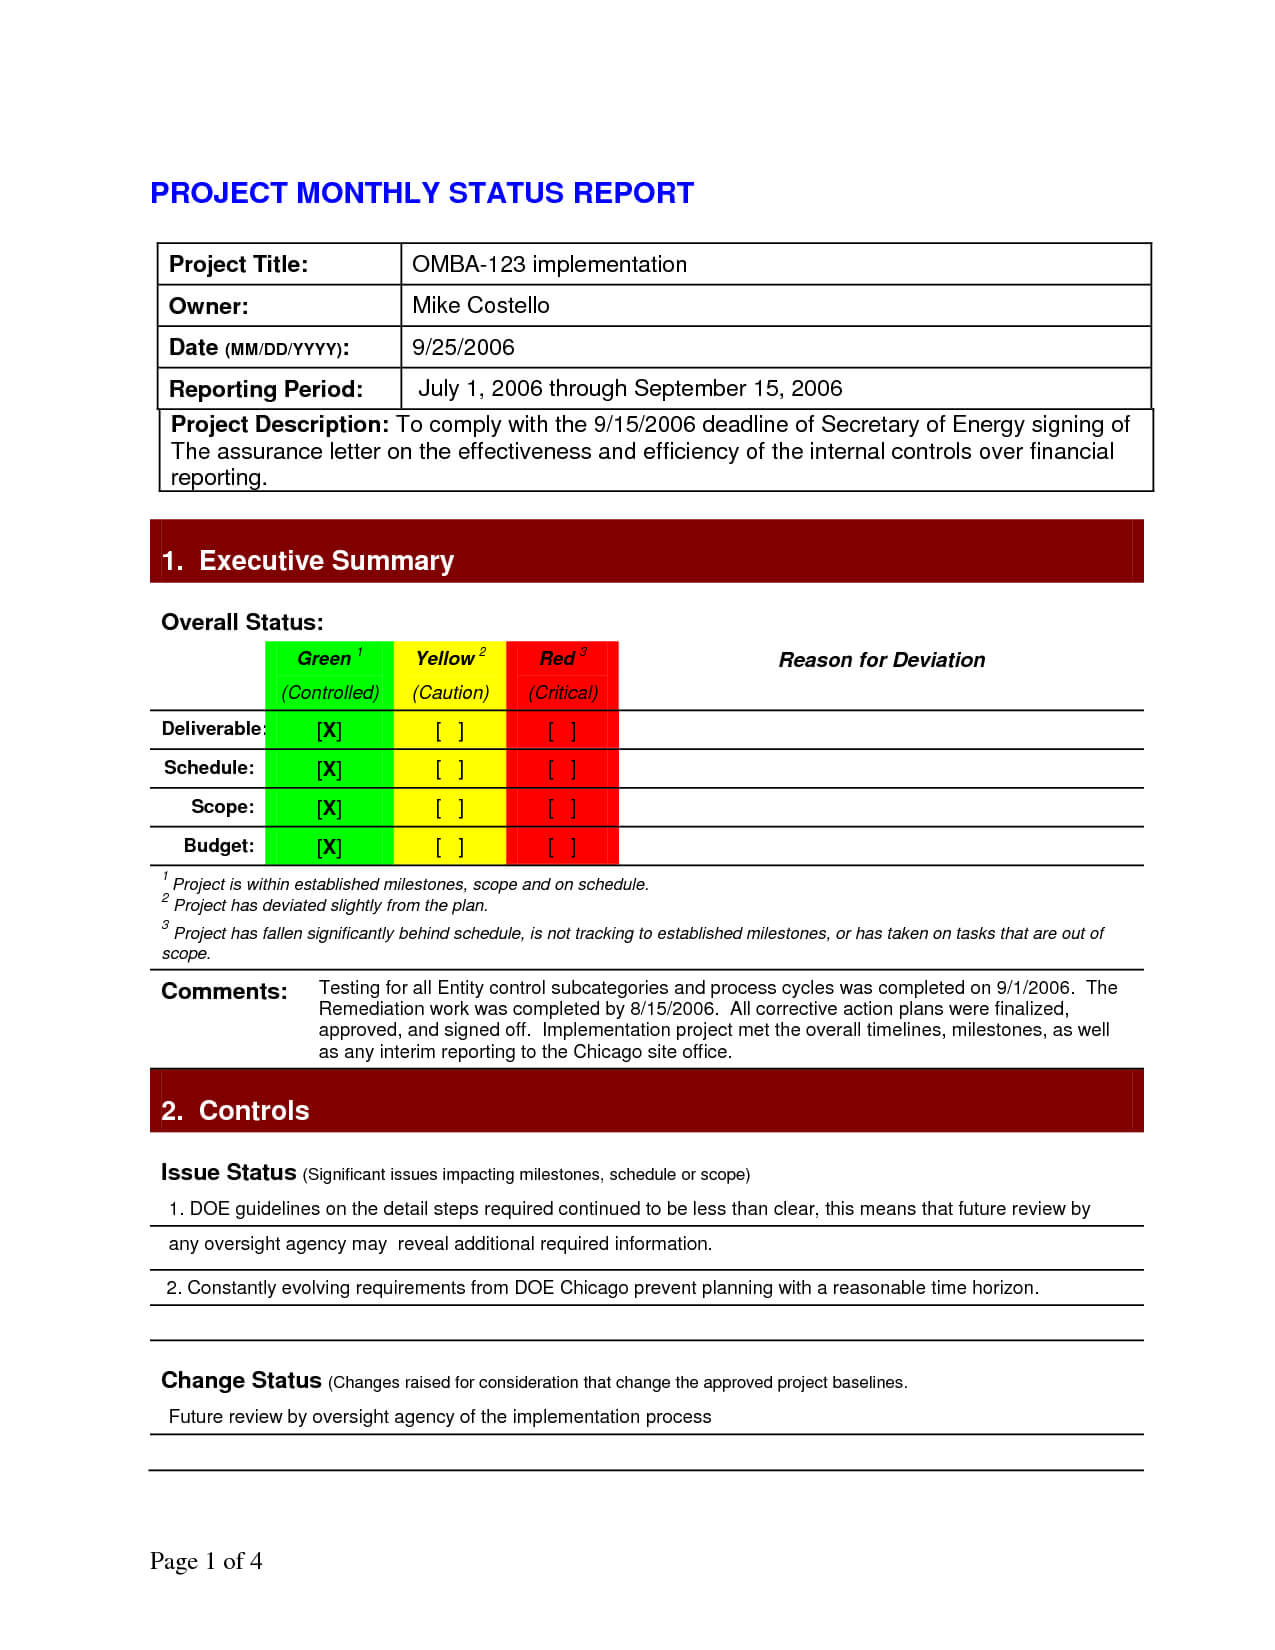 Construction Progress Report Template Free Tagua Spreadsheet inside Daily Status Report Template Xls